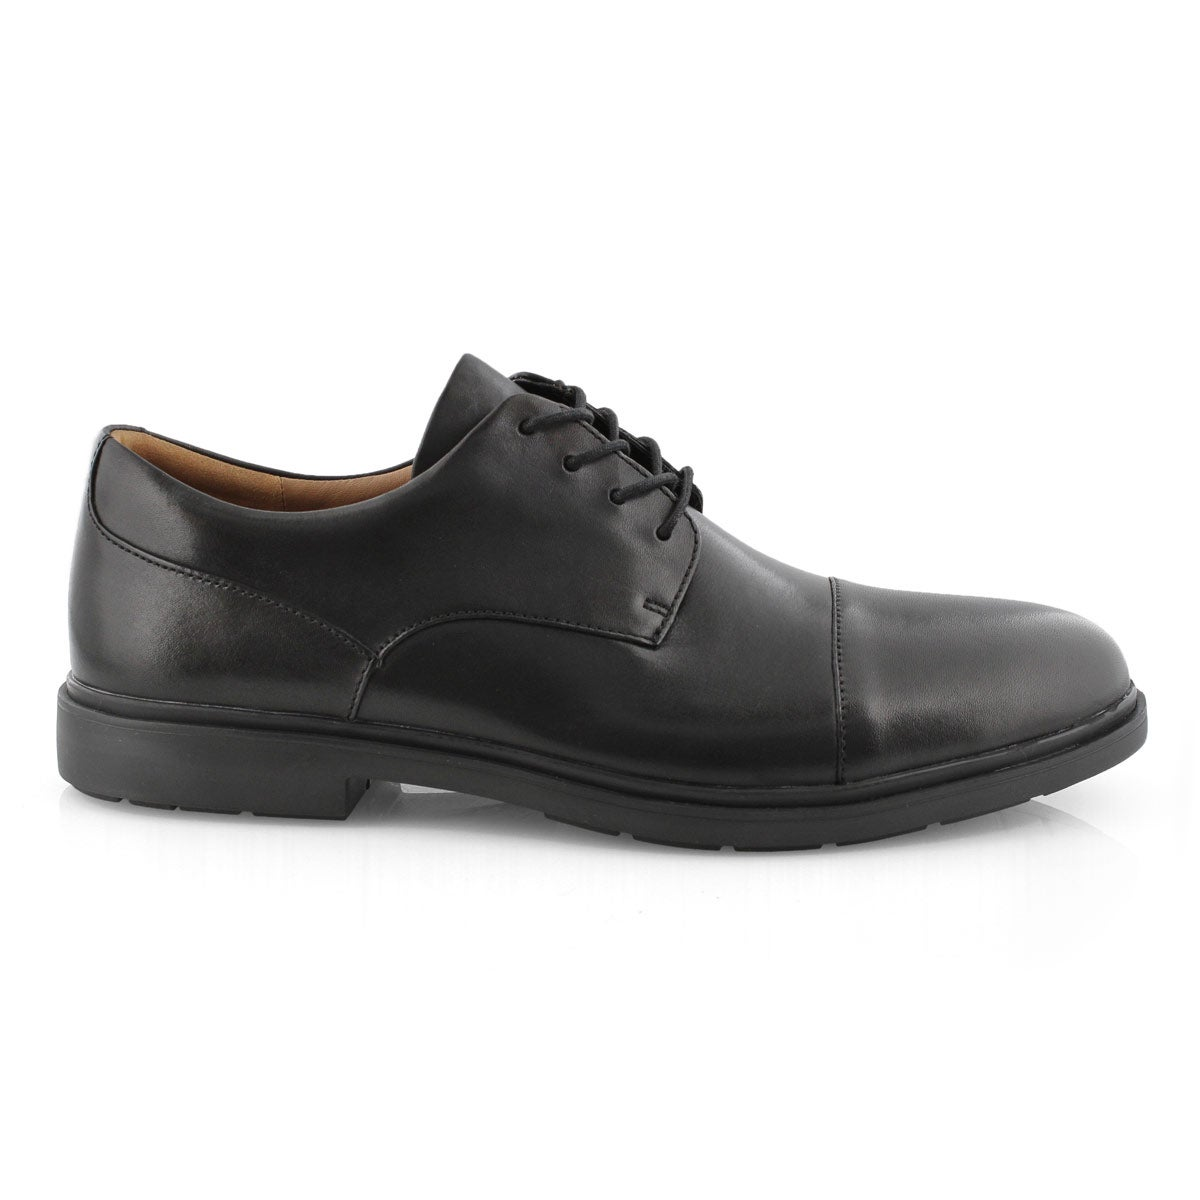 Mns UnTailor Cap blk dress oxford wide